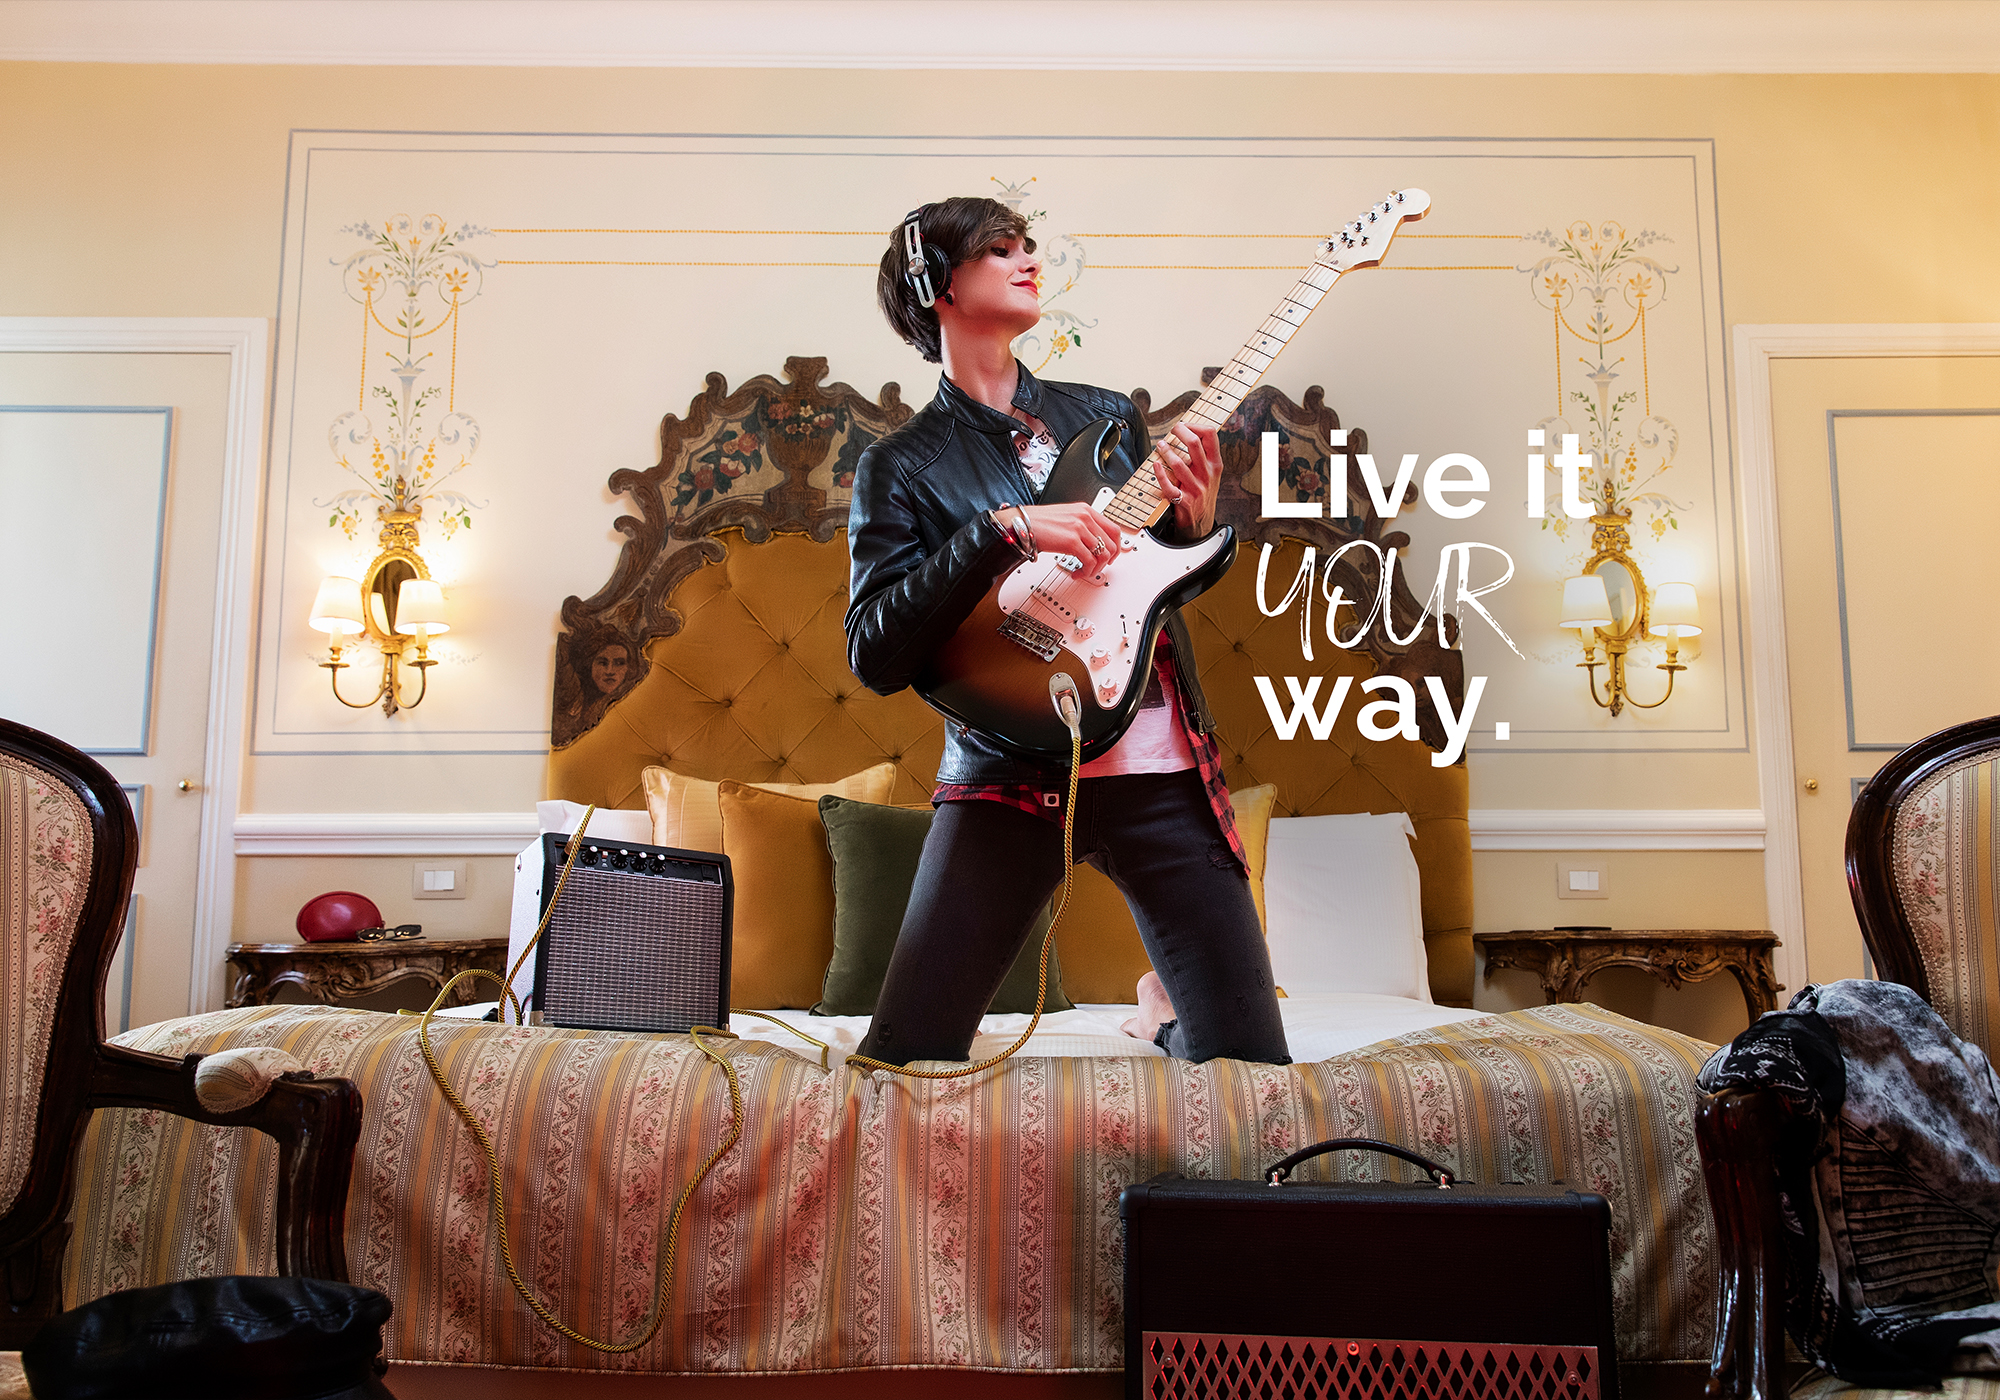 Rocker_grandhotelRitz_Live_it_your_way